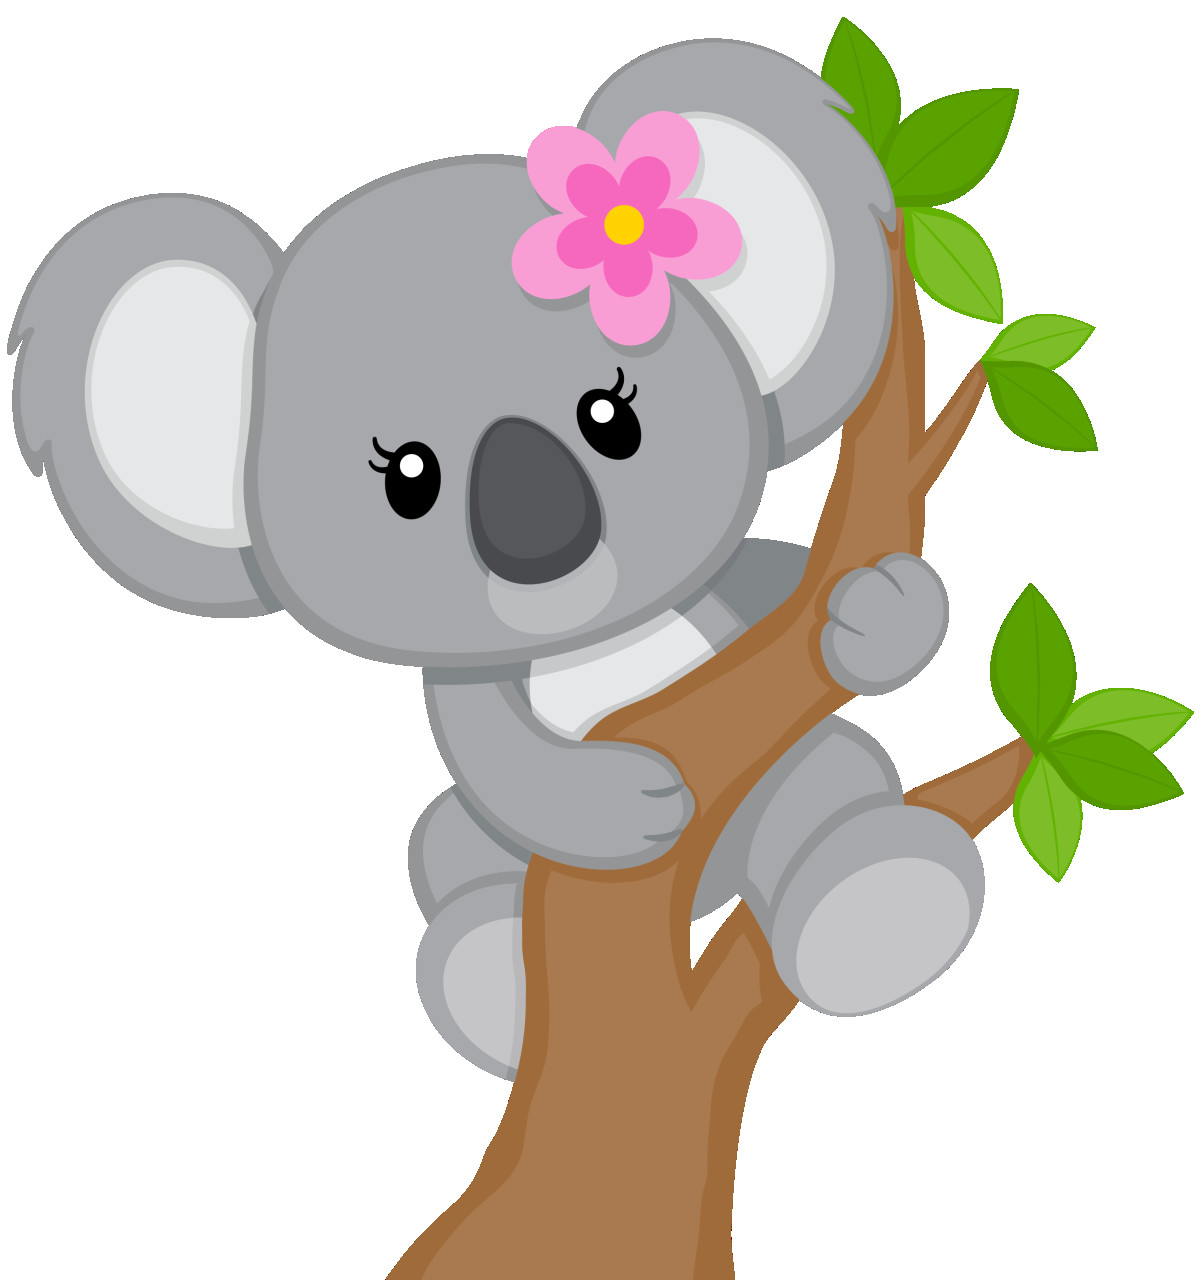 Koala clipart. Free transitionsfv df daa